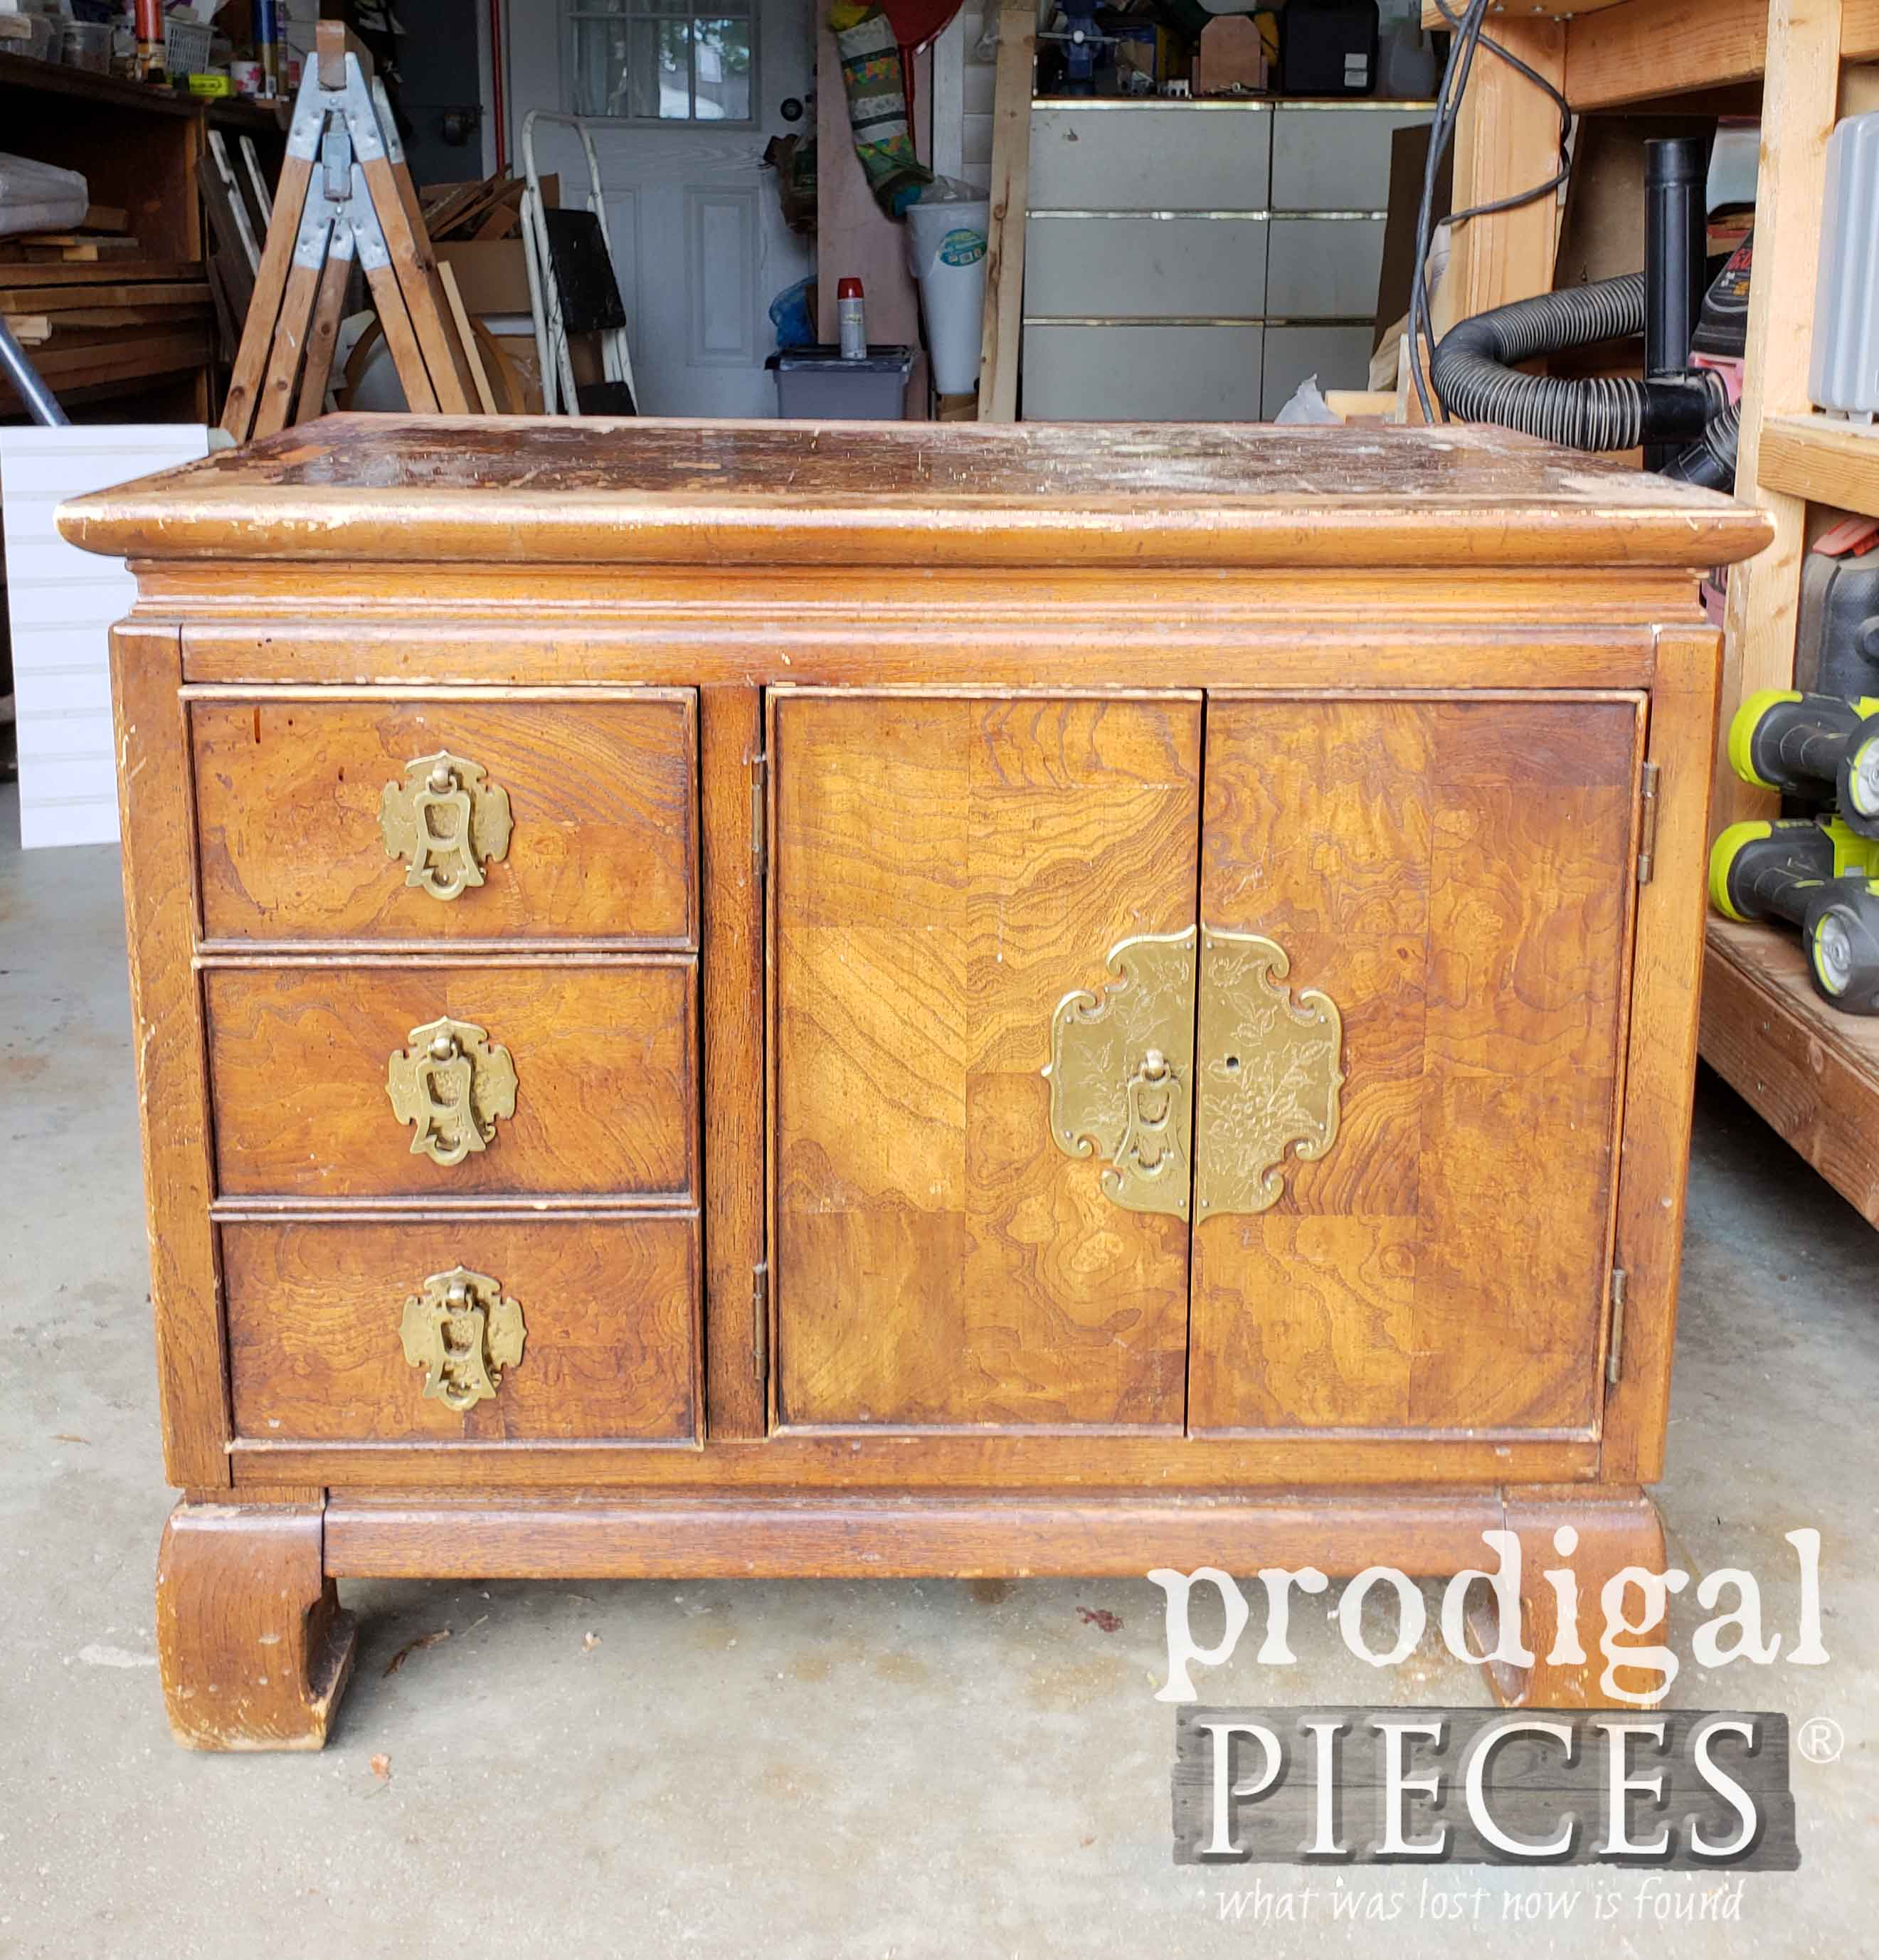 Vintage Chest Nightstand Before Makeover by Larissa of Prodigal Pieces | prodigalpieces.com